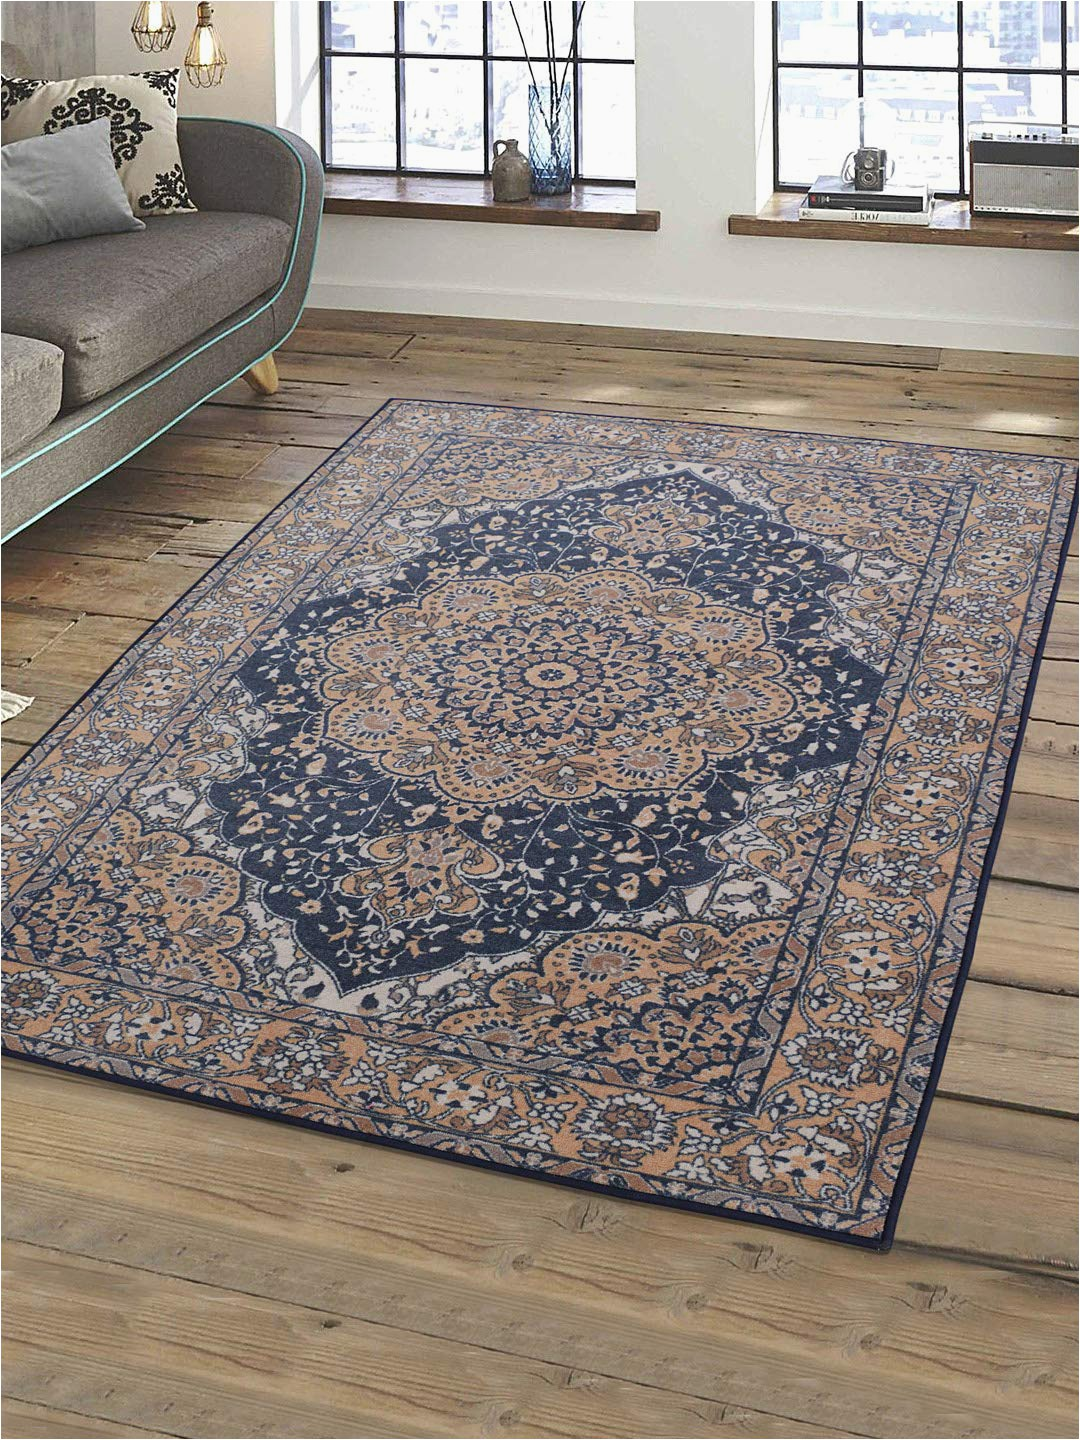 4 by 6 Foot area Rugs Buy Rugsmith solid Pattern 4 X 6 Feet area Rug Line at Low